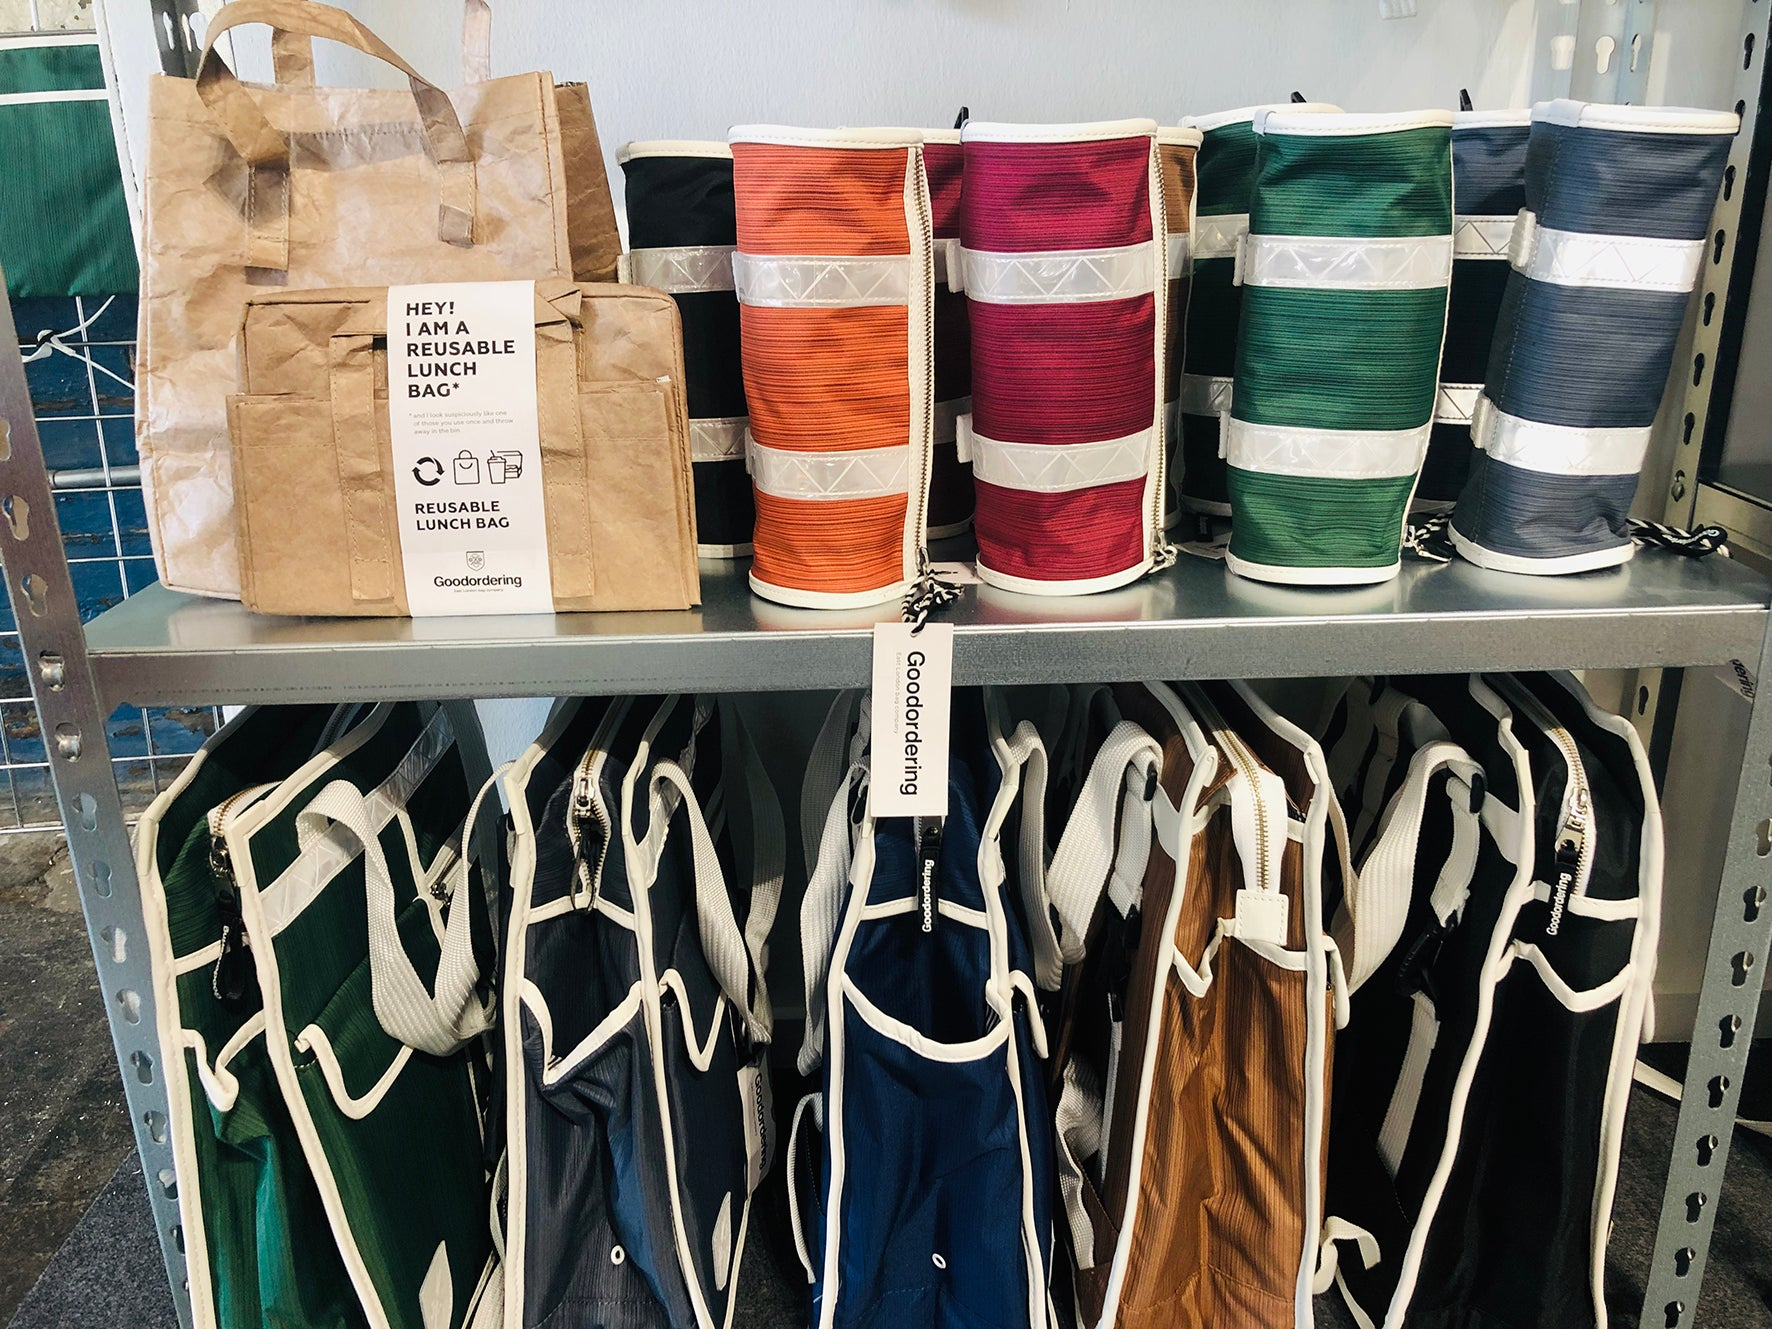 Goodordering bags at the London Design Fair 2019